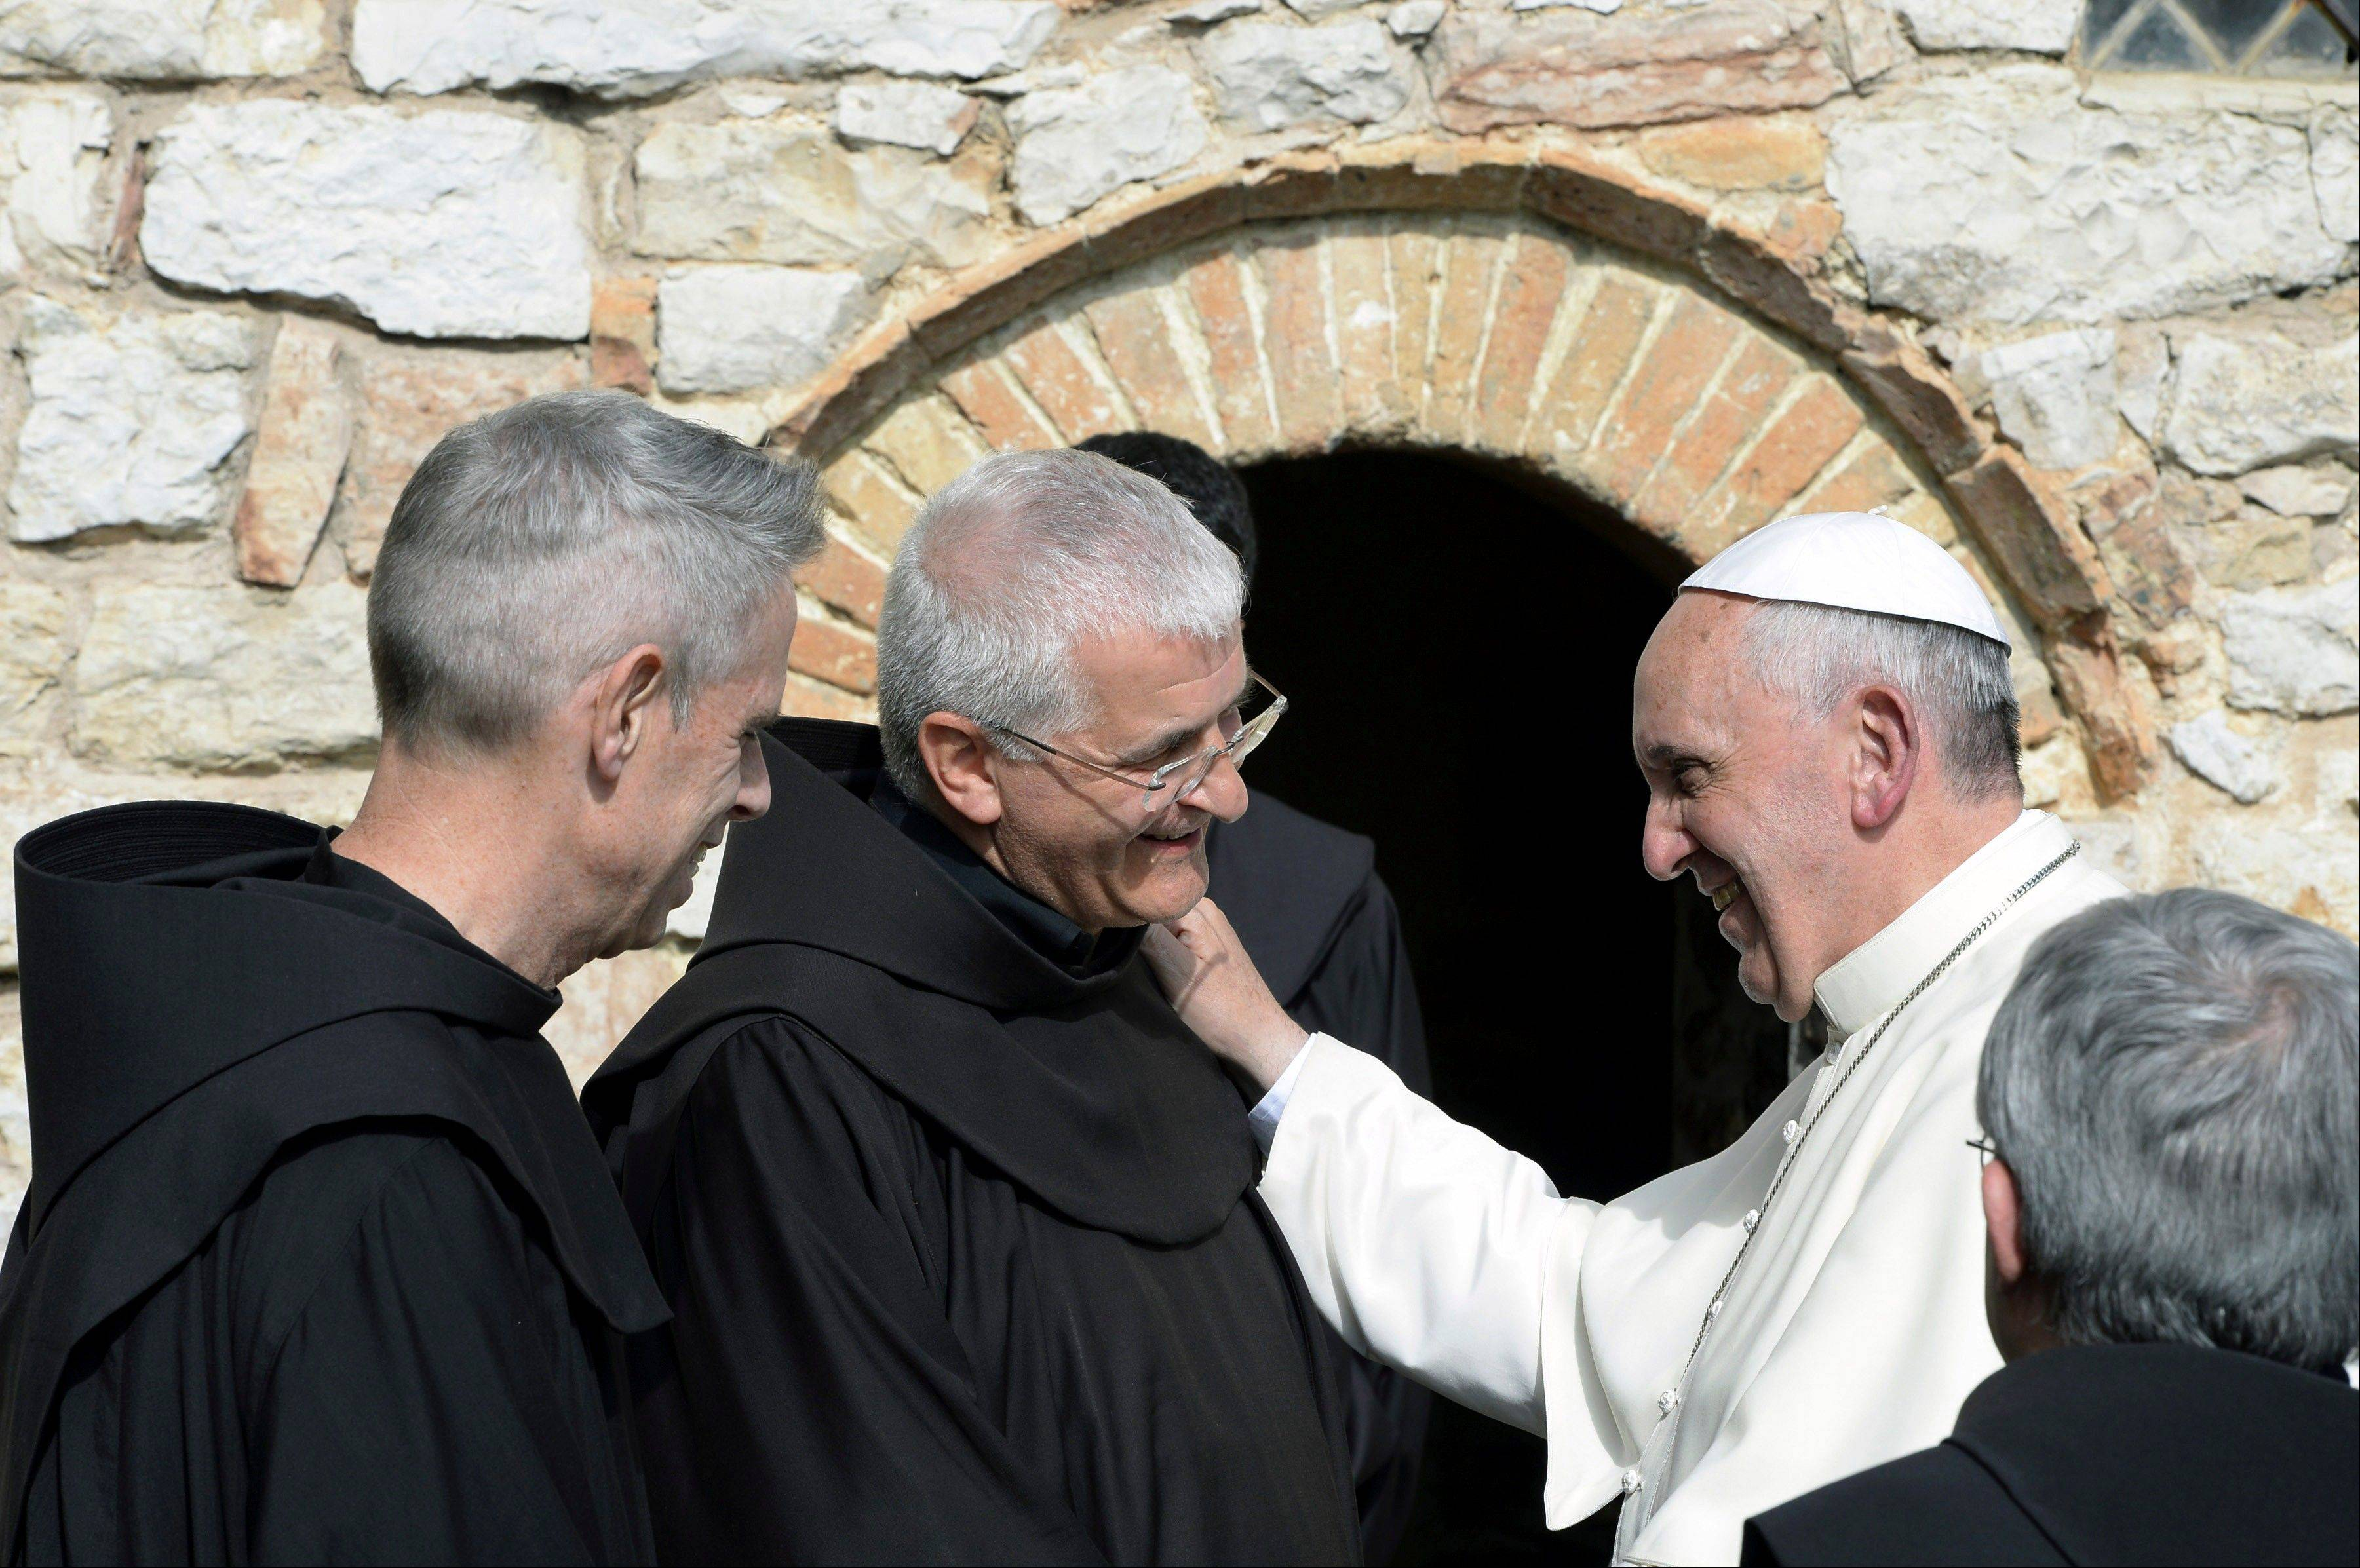 Pope Francis, right, shares a word with friars during his tour of the Eremo delle Carceri hermitage, near Assisi, Italy, Friday, Oct. 4, 2013. Pope Francis took a pilgrimage to his namesake's hometown Friday, urging the faithful to follow the example of the 13th-century St. Francis, who renounced a wealthy, dissolute lifestyle to embrace a life of poverty and service to the poor.